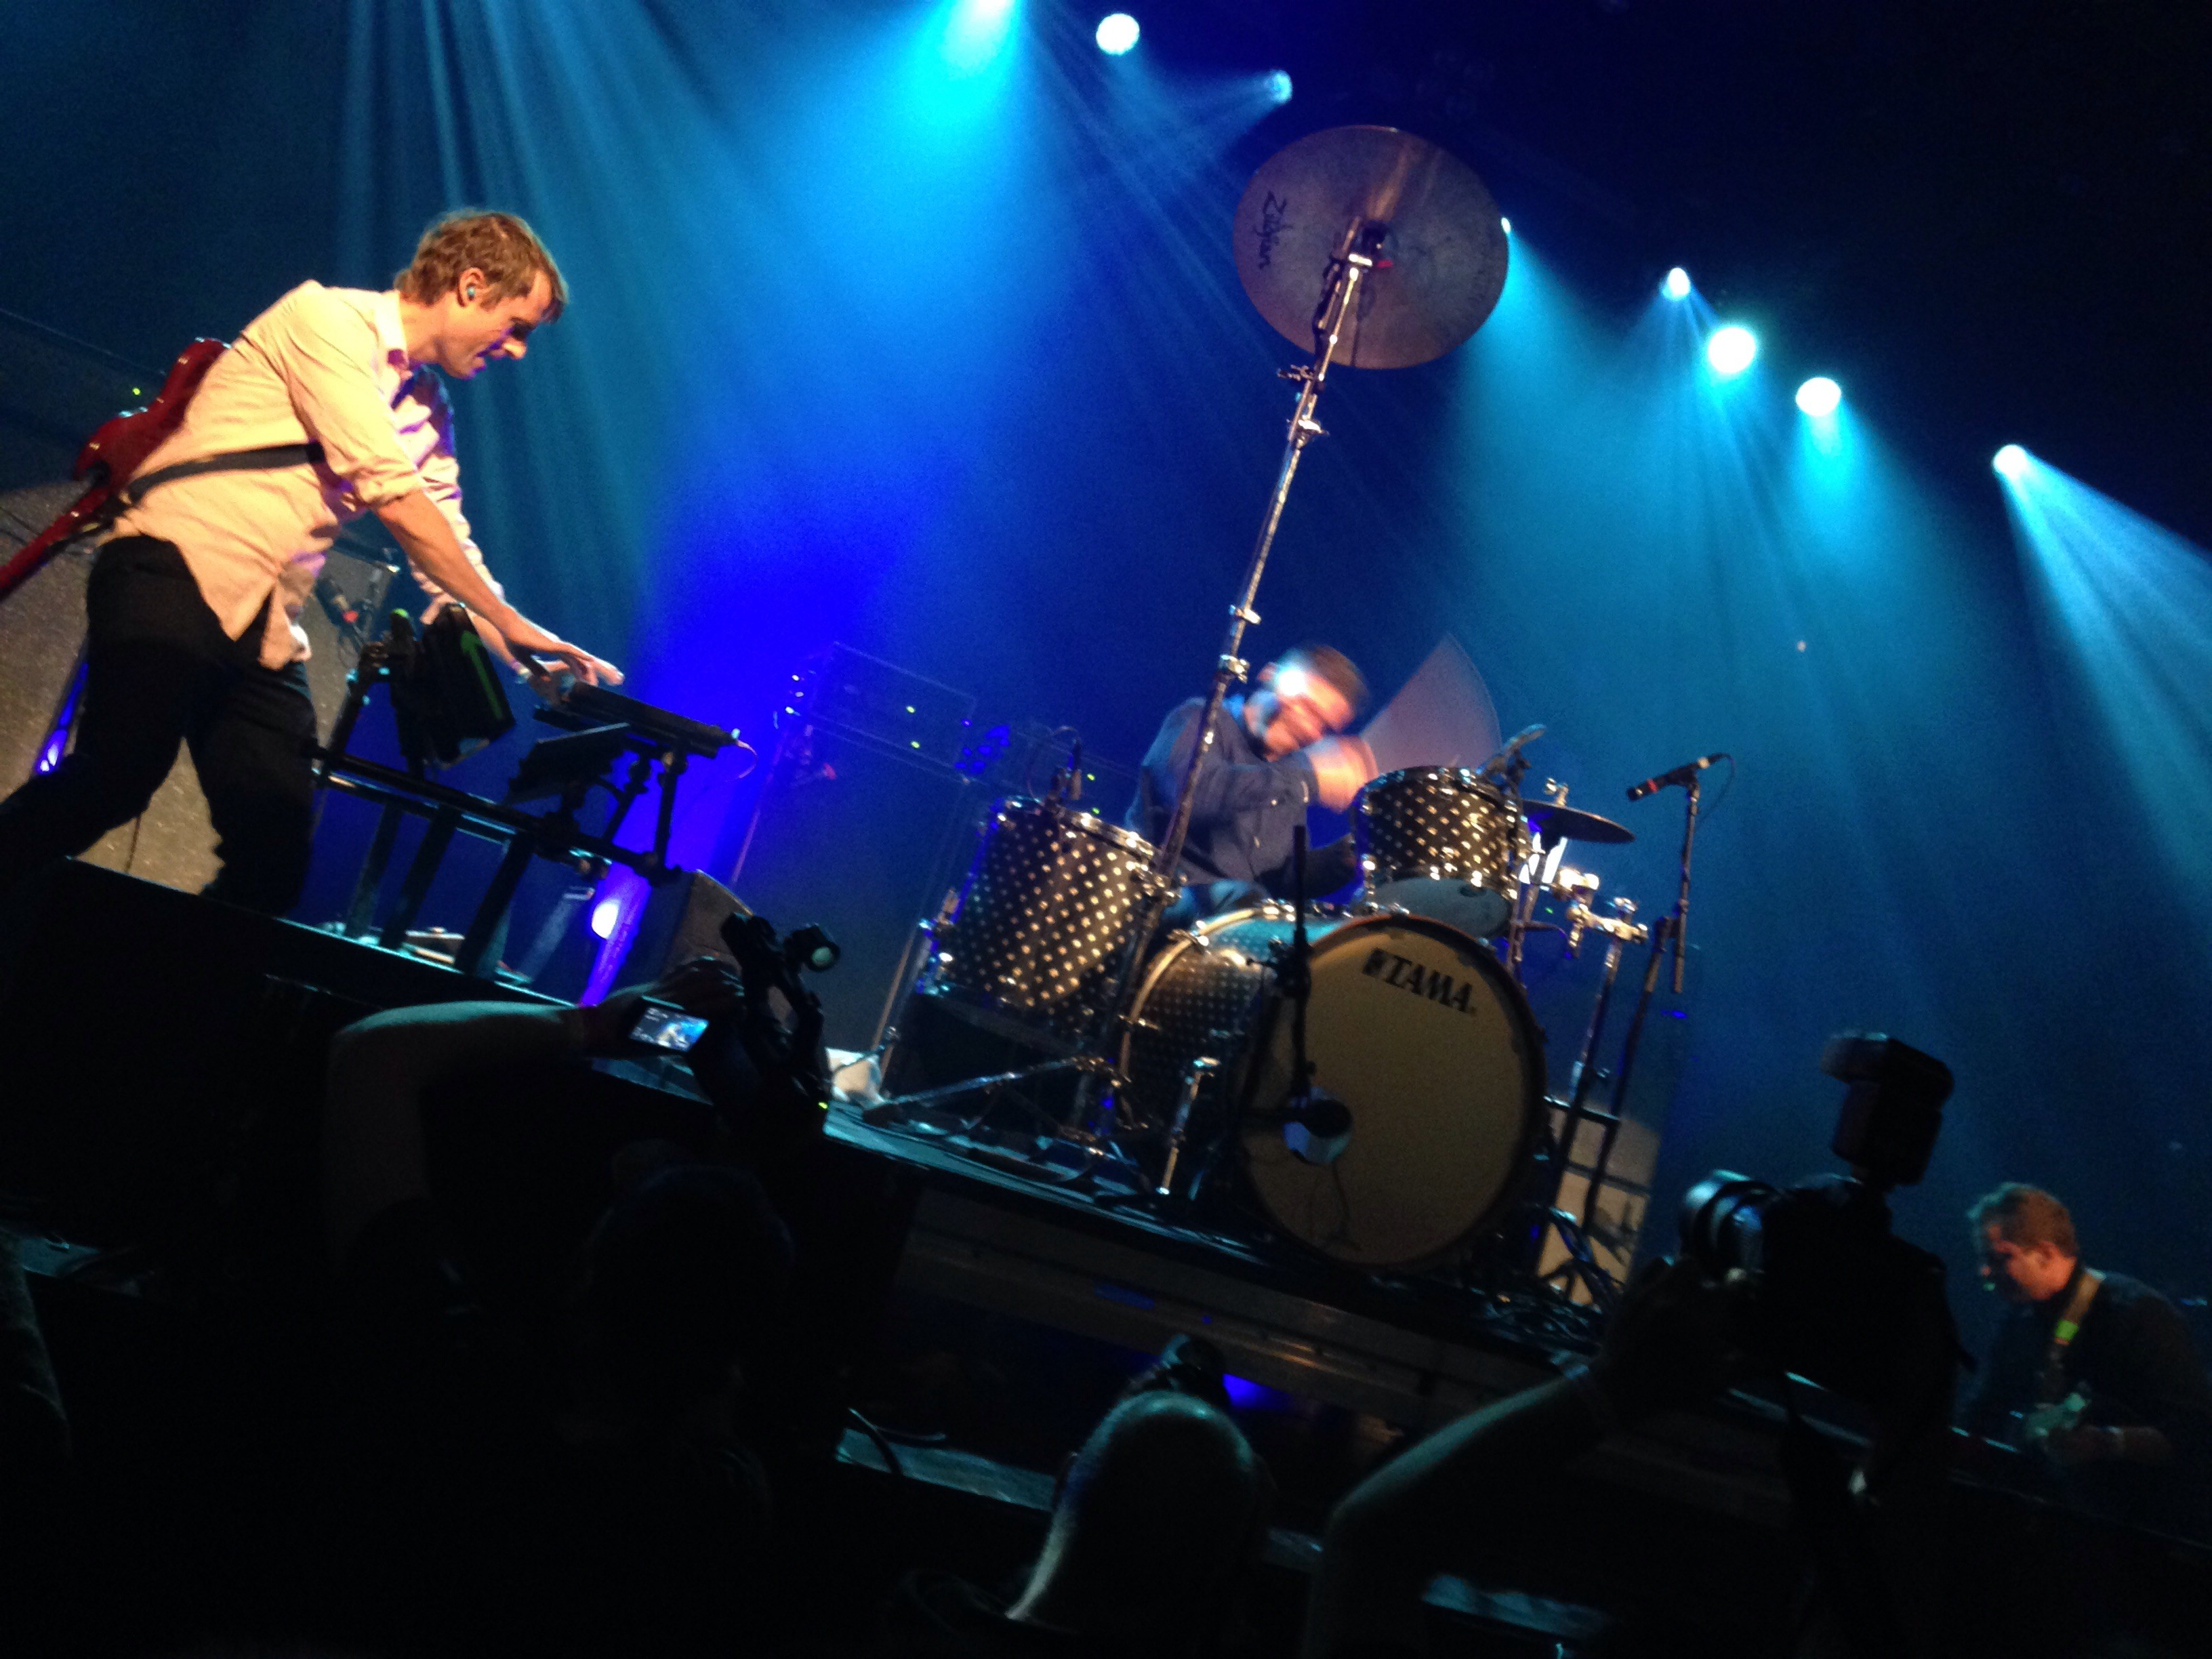 Battles at Iceleand Airwaves 2015